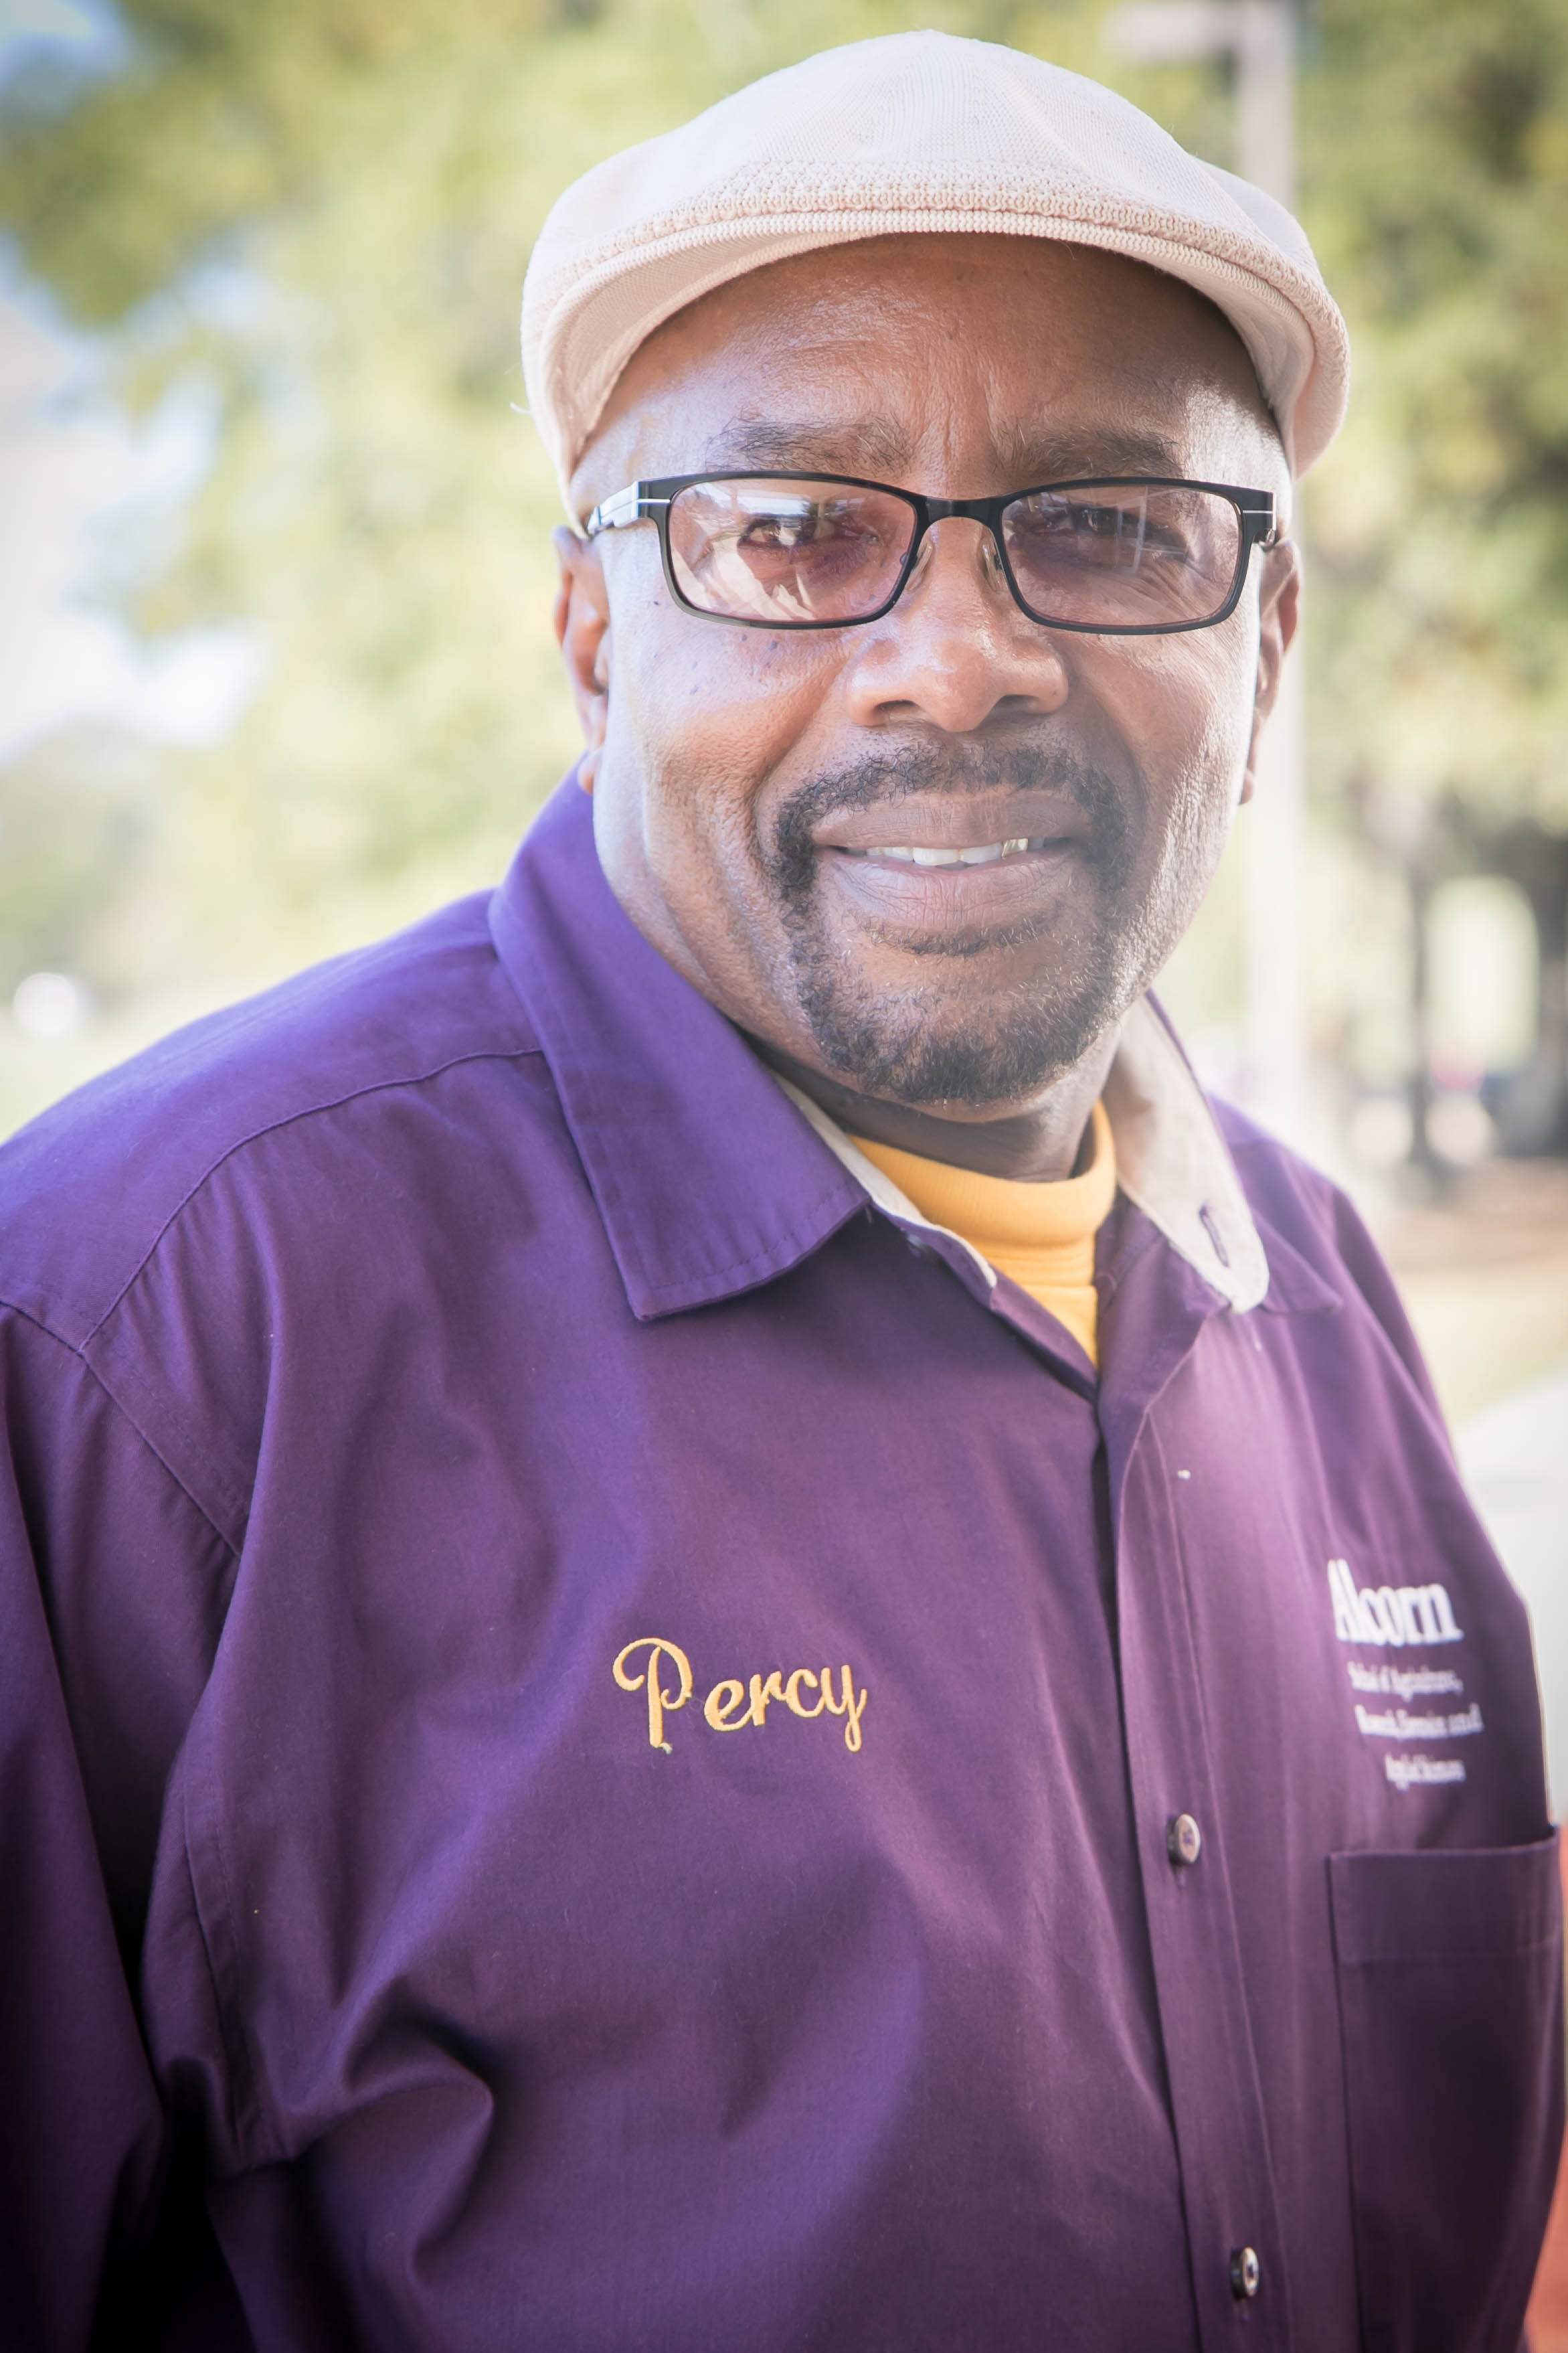 Percy Baldwin, Facility Manager